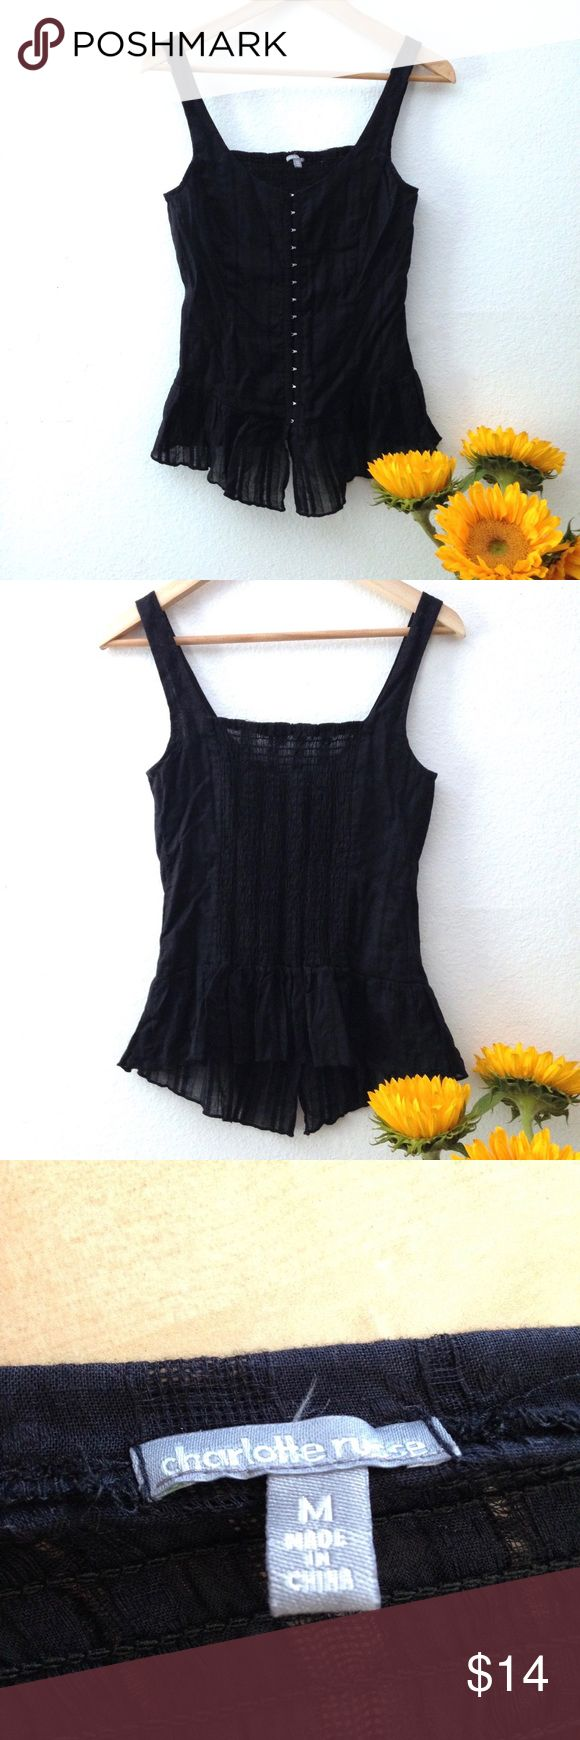 Charlotte Russe Black Front Clasp Top Black bodice style top with front clasps, stretchy smocked back, and peplum style bottom. Very flattering with vertical seams and stretchy back. Perfect going out top paired with jeans and heels. Charlotte Russe Tops Tank Tops